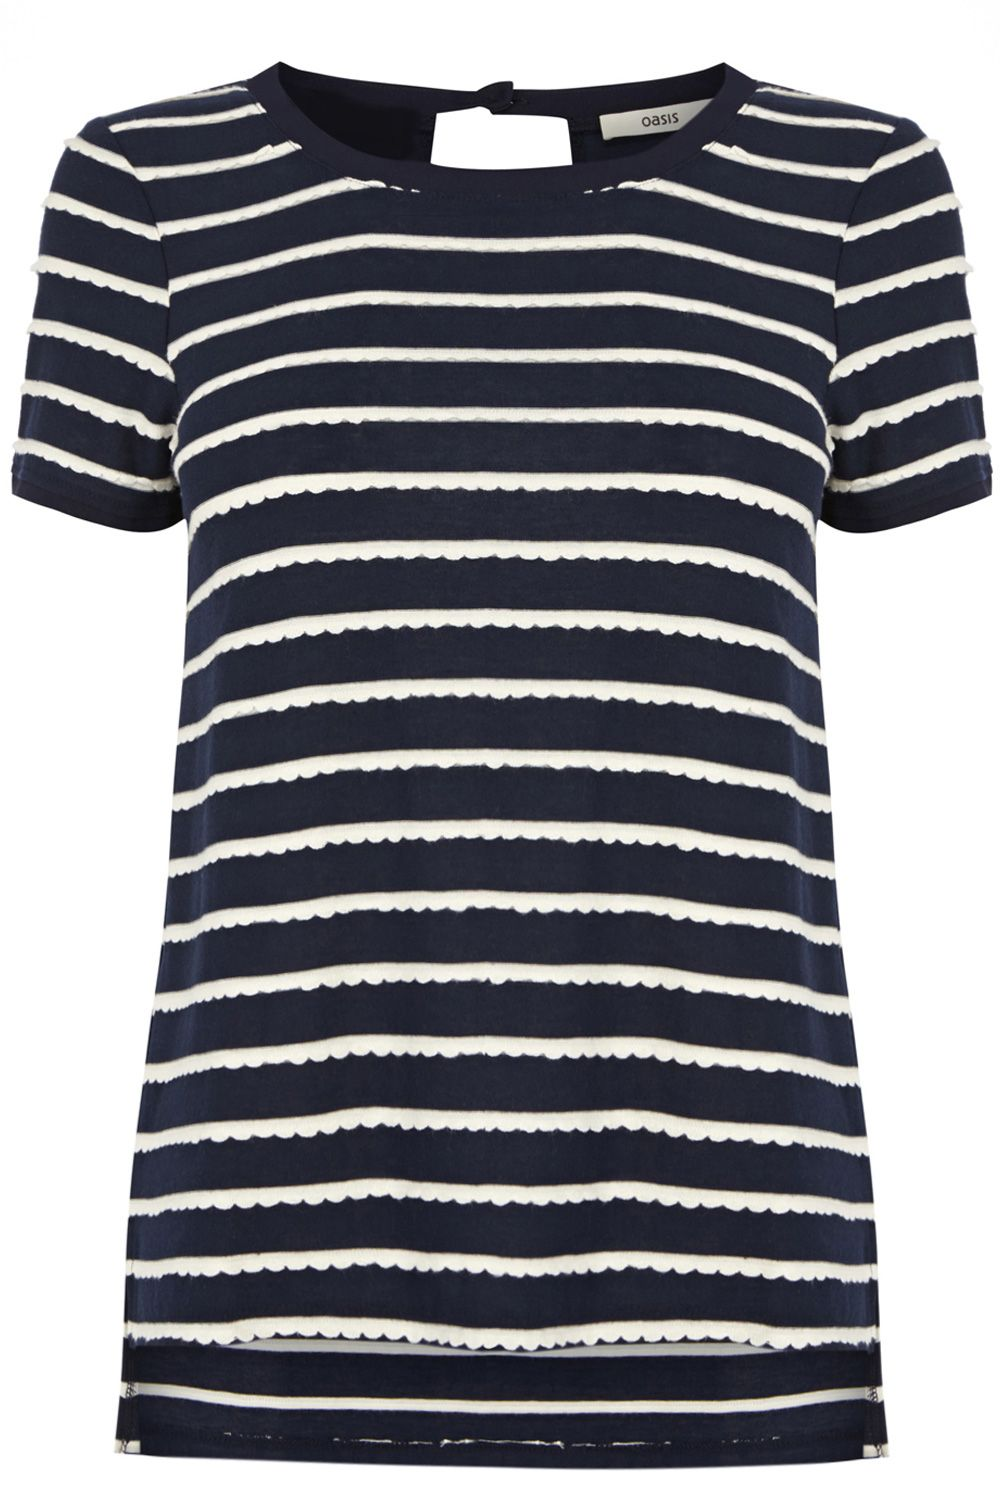 Scallop stripe t-shirt